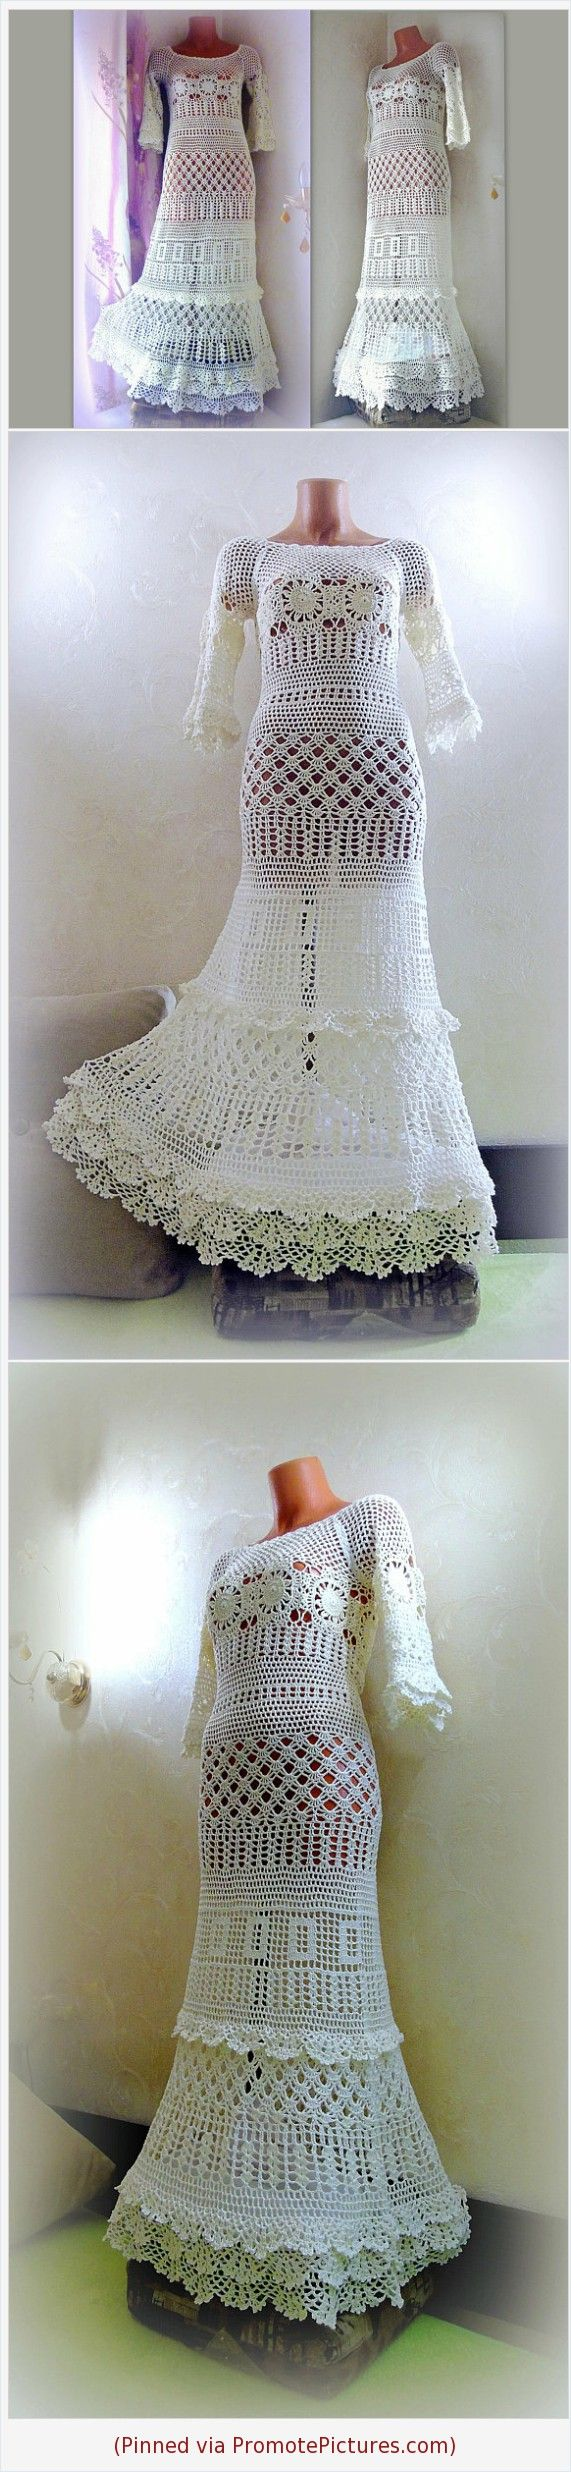 Boho chic wedding dress crochet lace ruffle bell sleeve maxi bridal